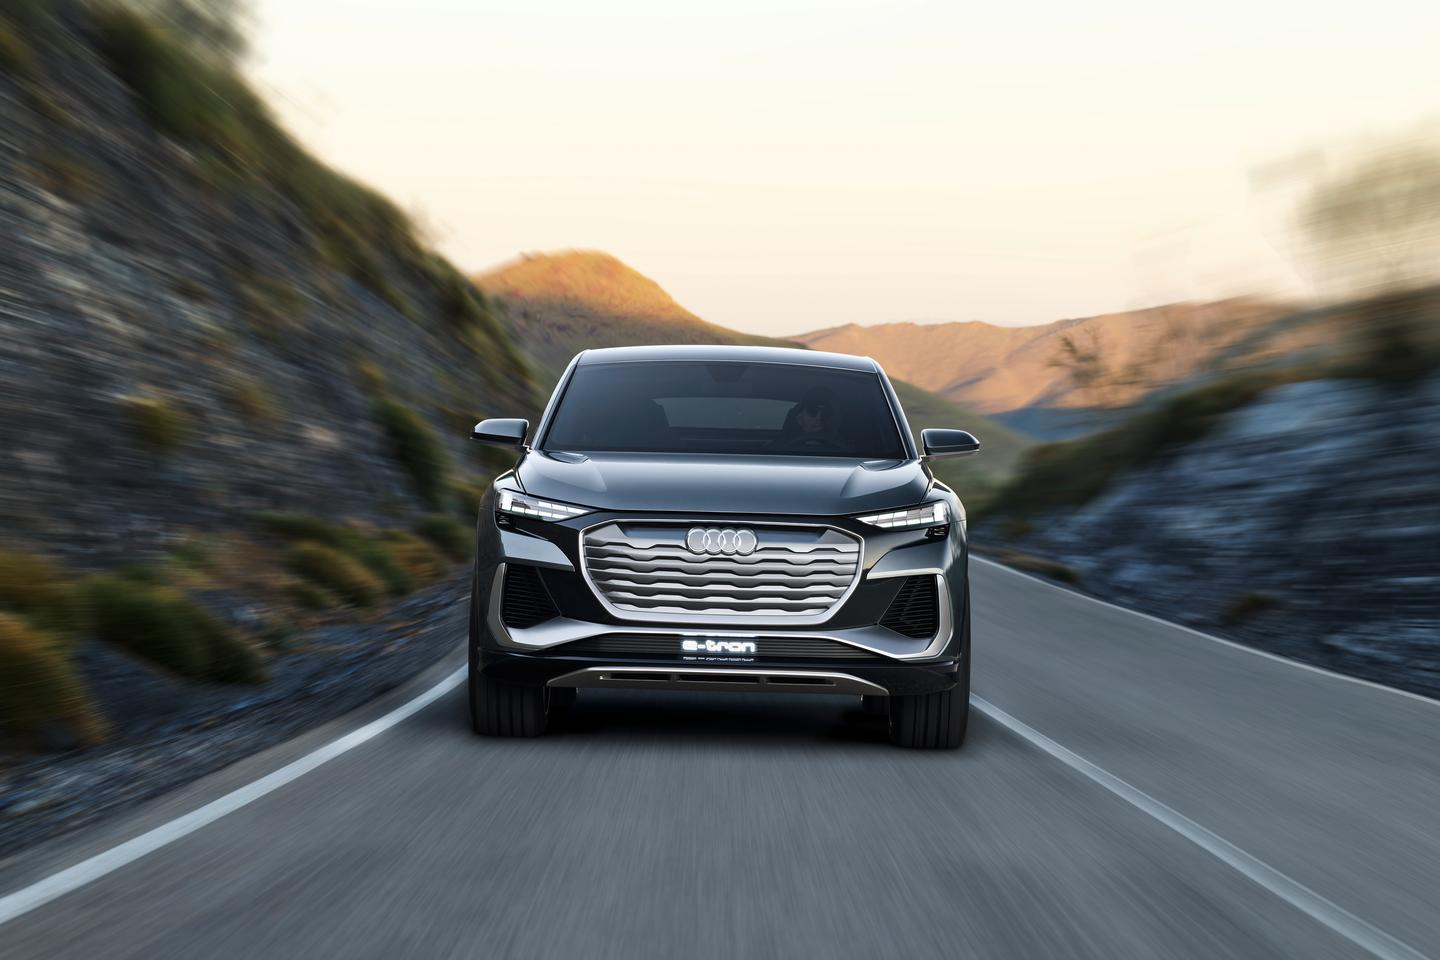 The Q4 Sportback e-tron has a strong single-frame grille surround and near-solid e-tron grille